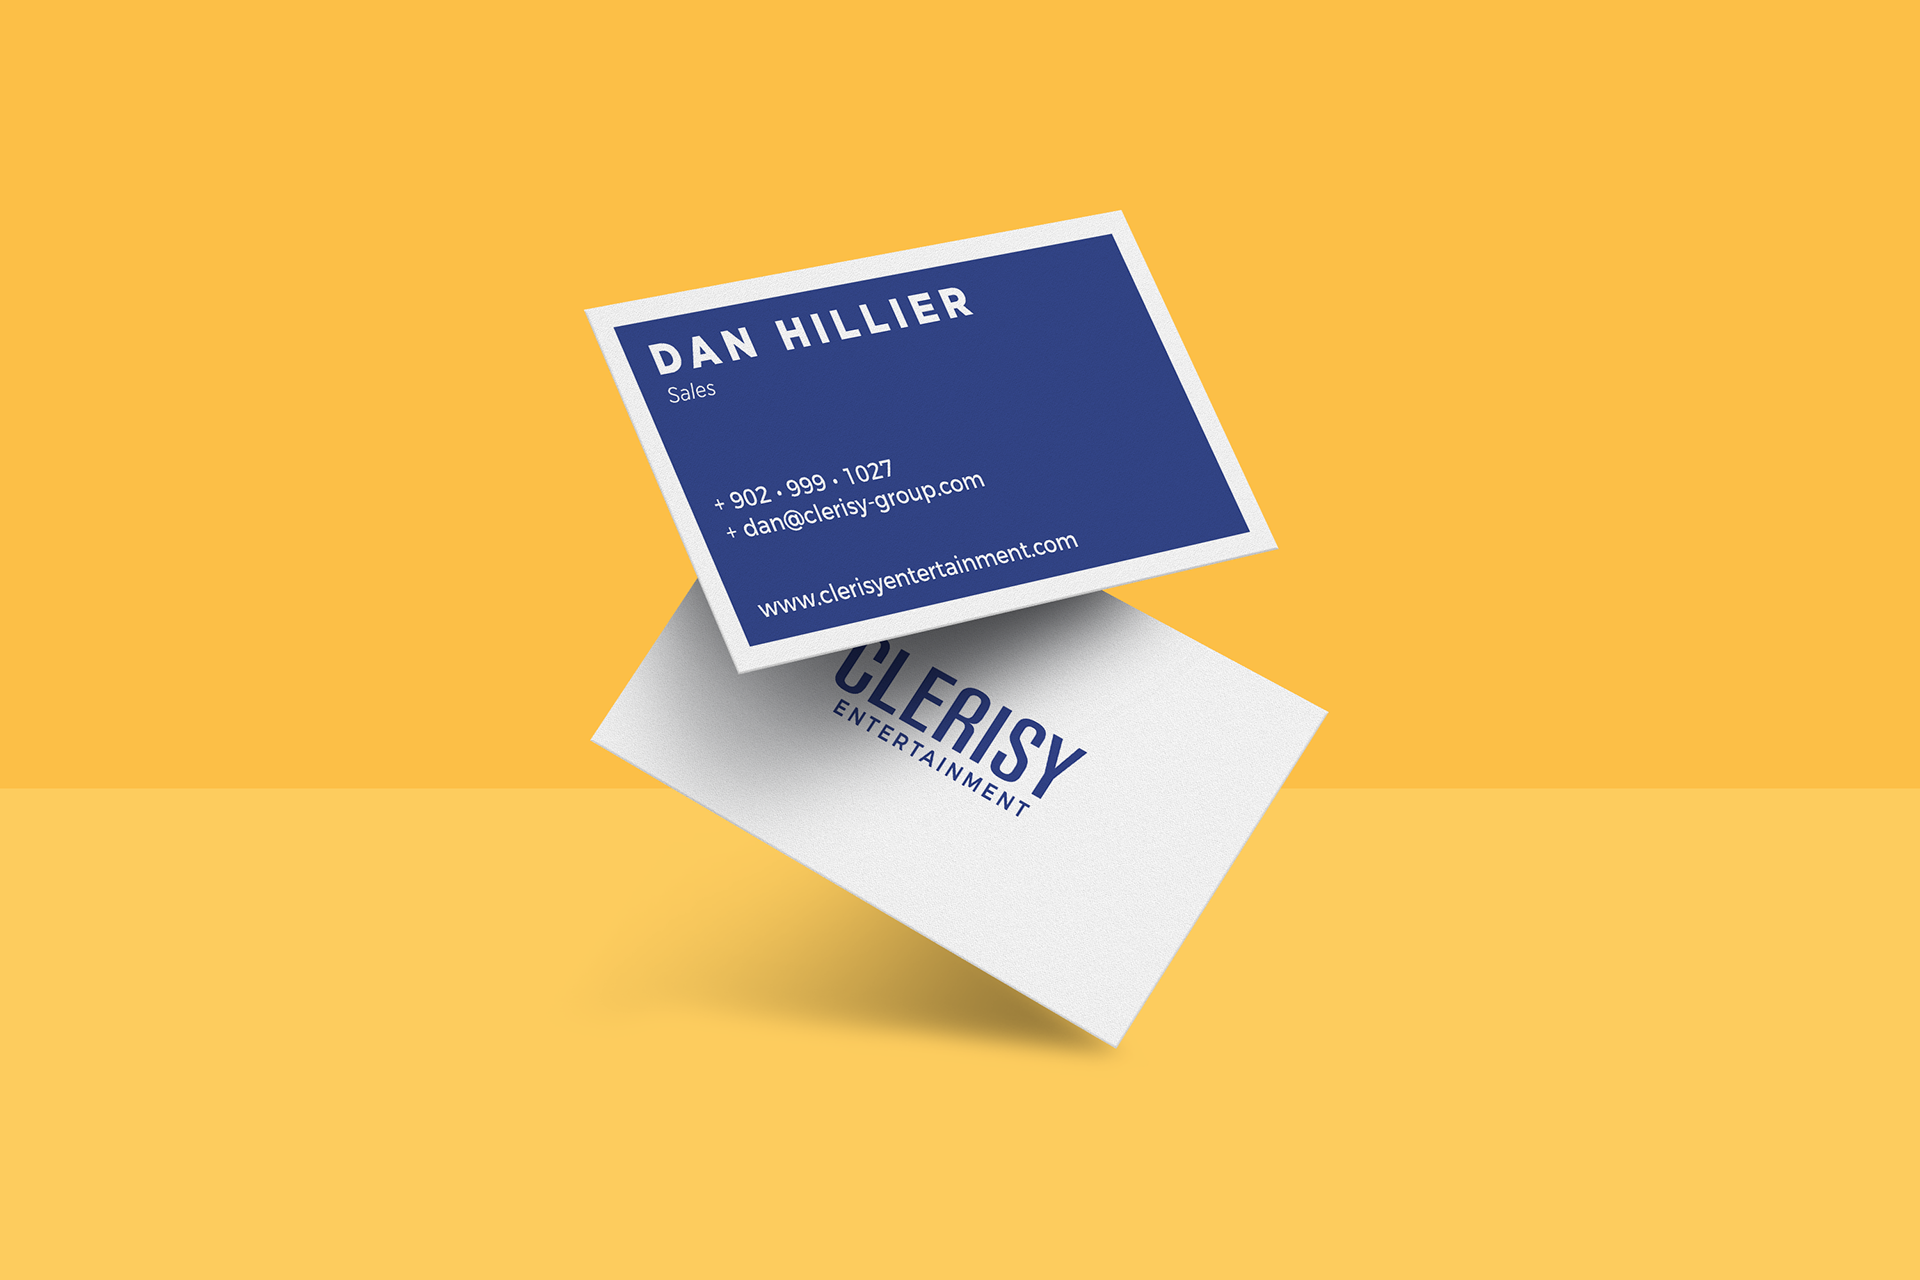 Adam le blanc clerisy business cards magicingreecefo Images